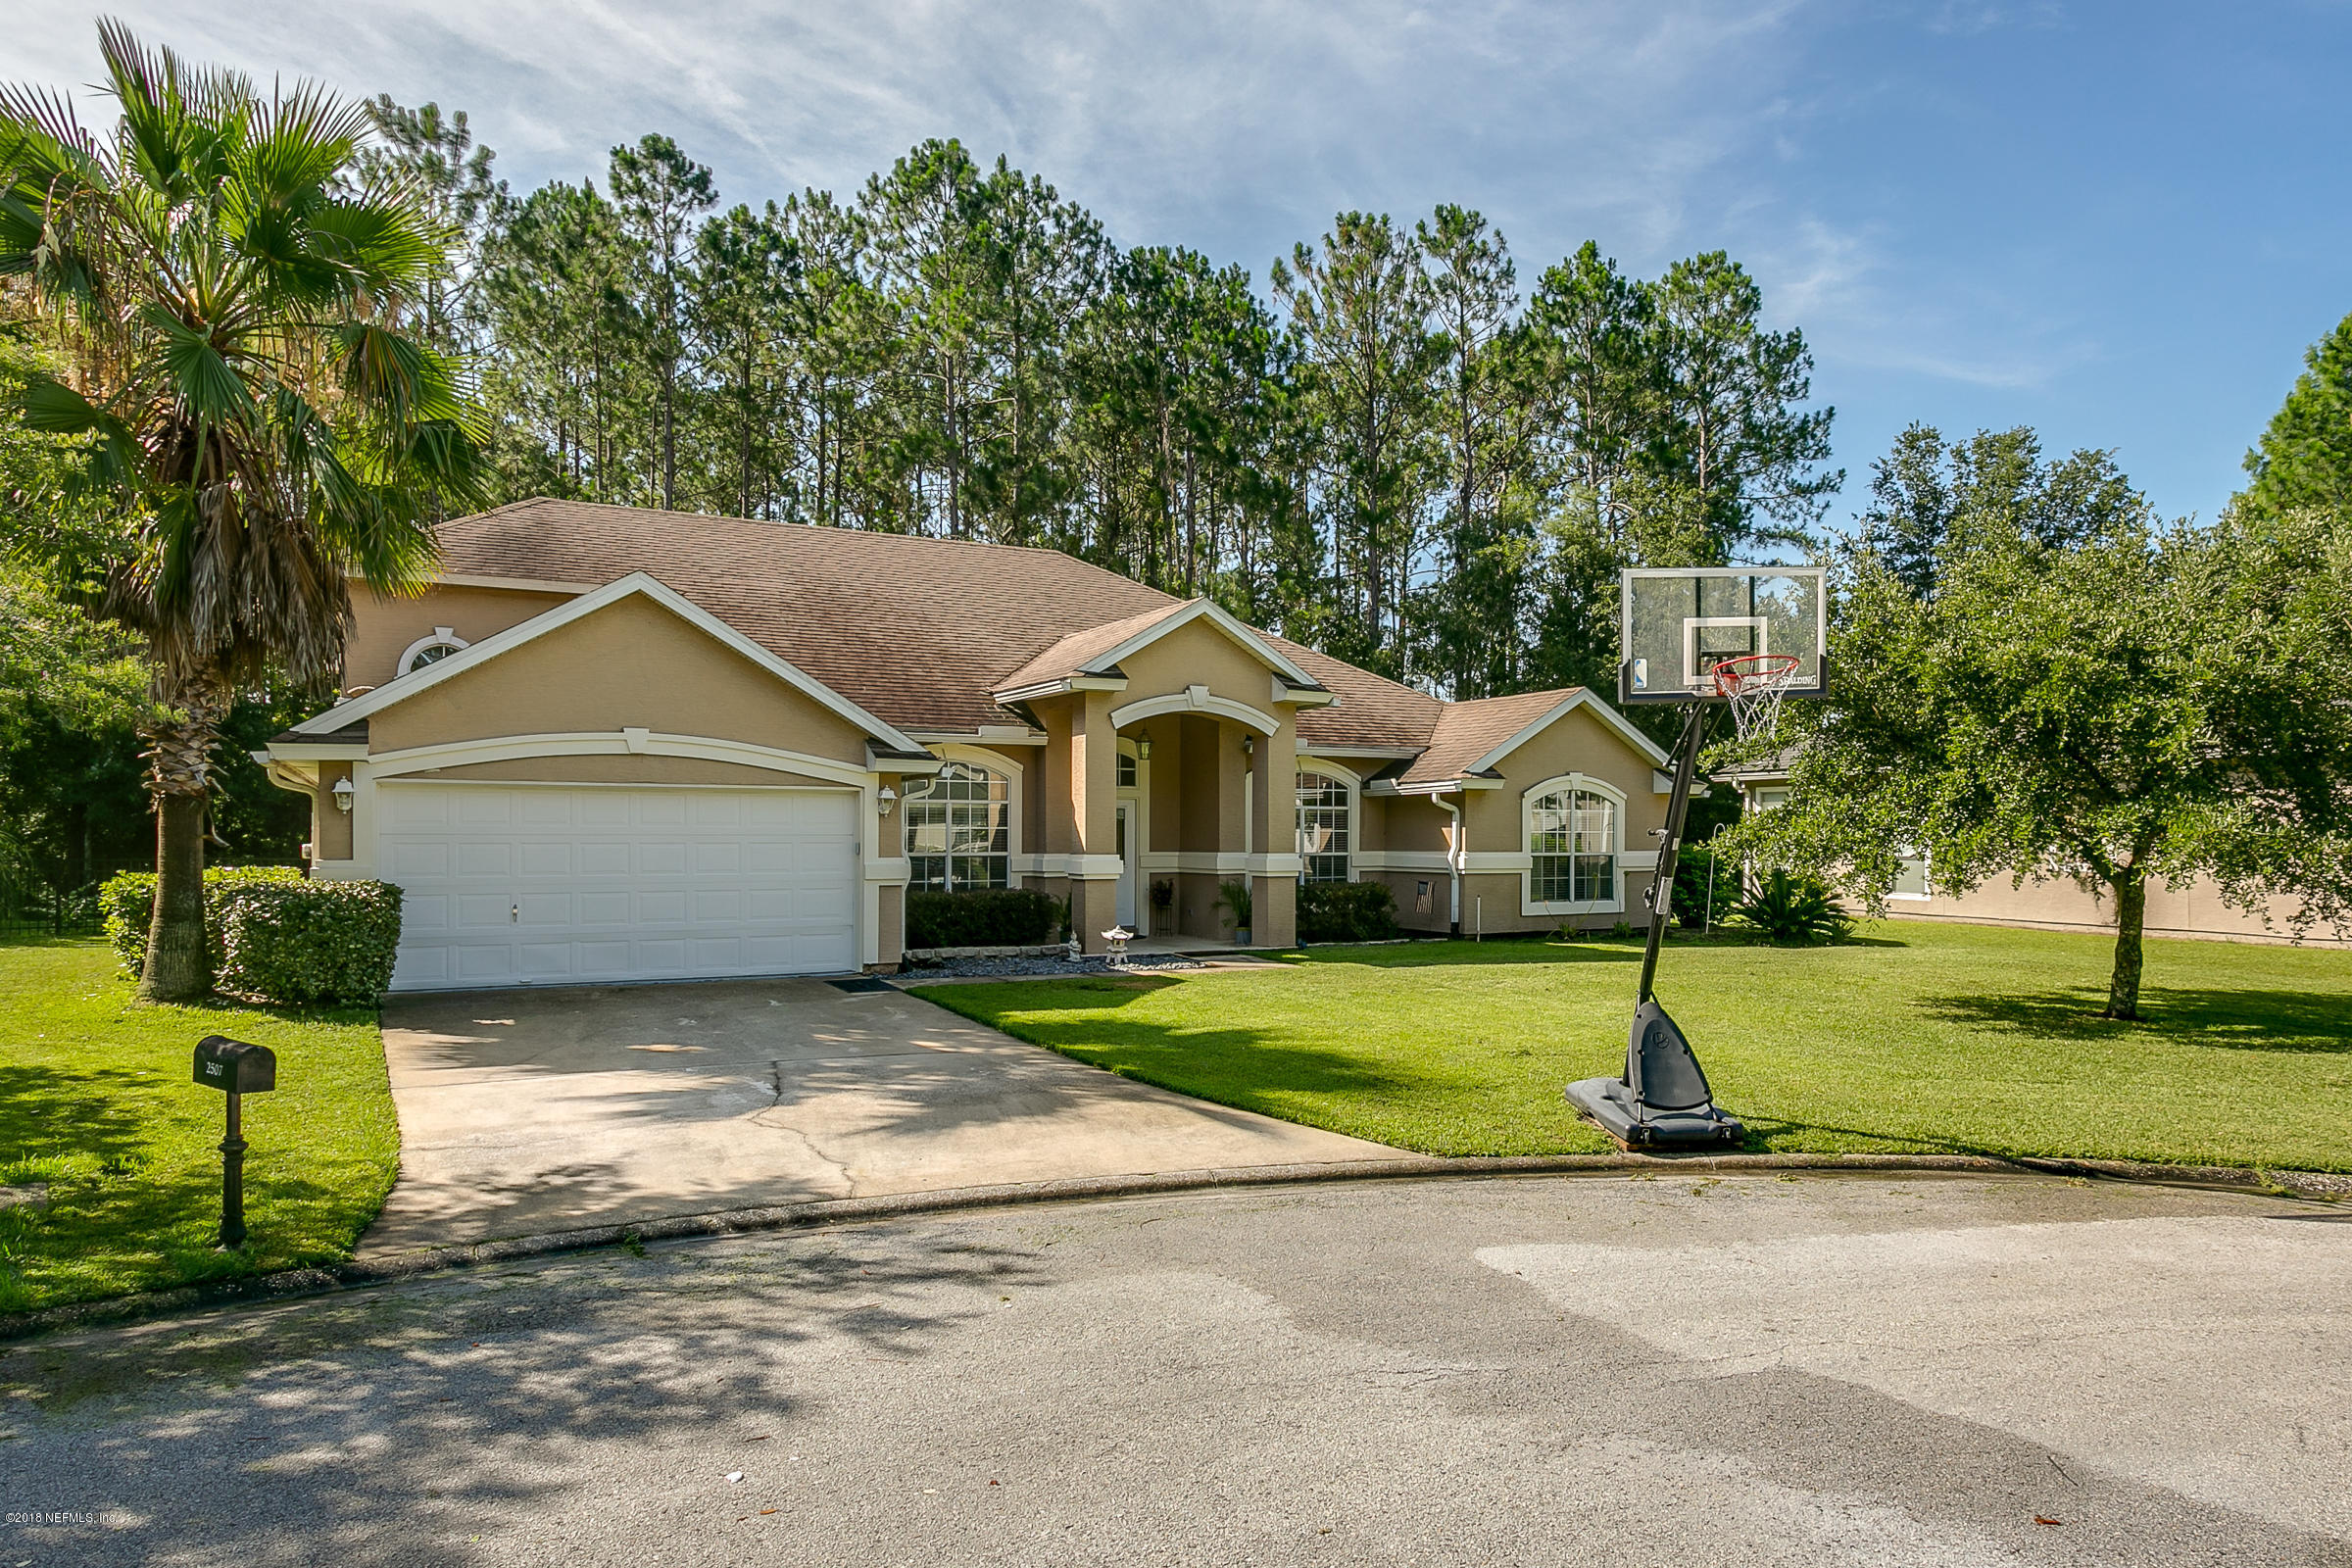 2507 WILLOW CREEK, FLEMING ISLAND, FLORIDA 32003, 4 Bedrooms Bedrooms, ,3 BathroomsBathrooms,Residential - single family,For sale,WILLOW CREEK,943481